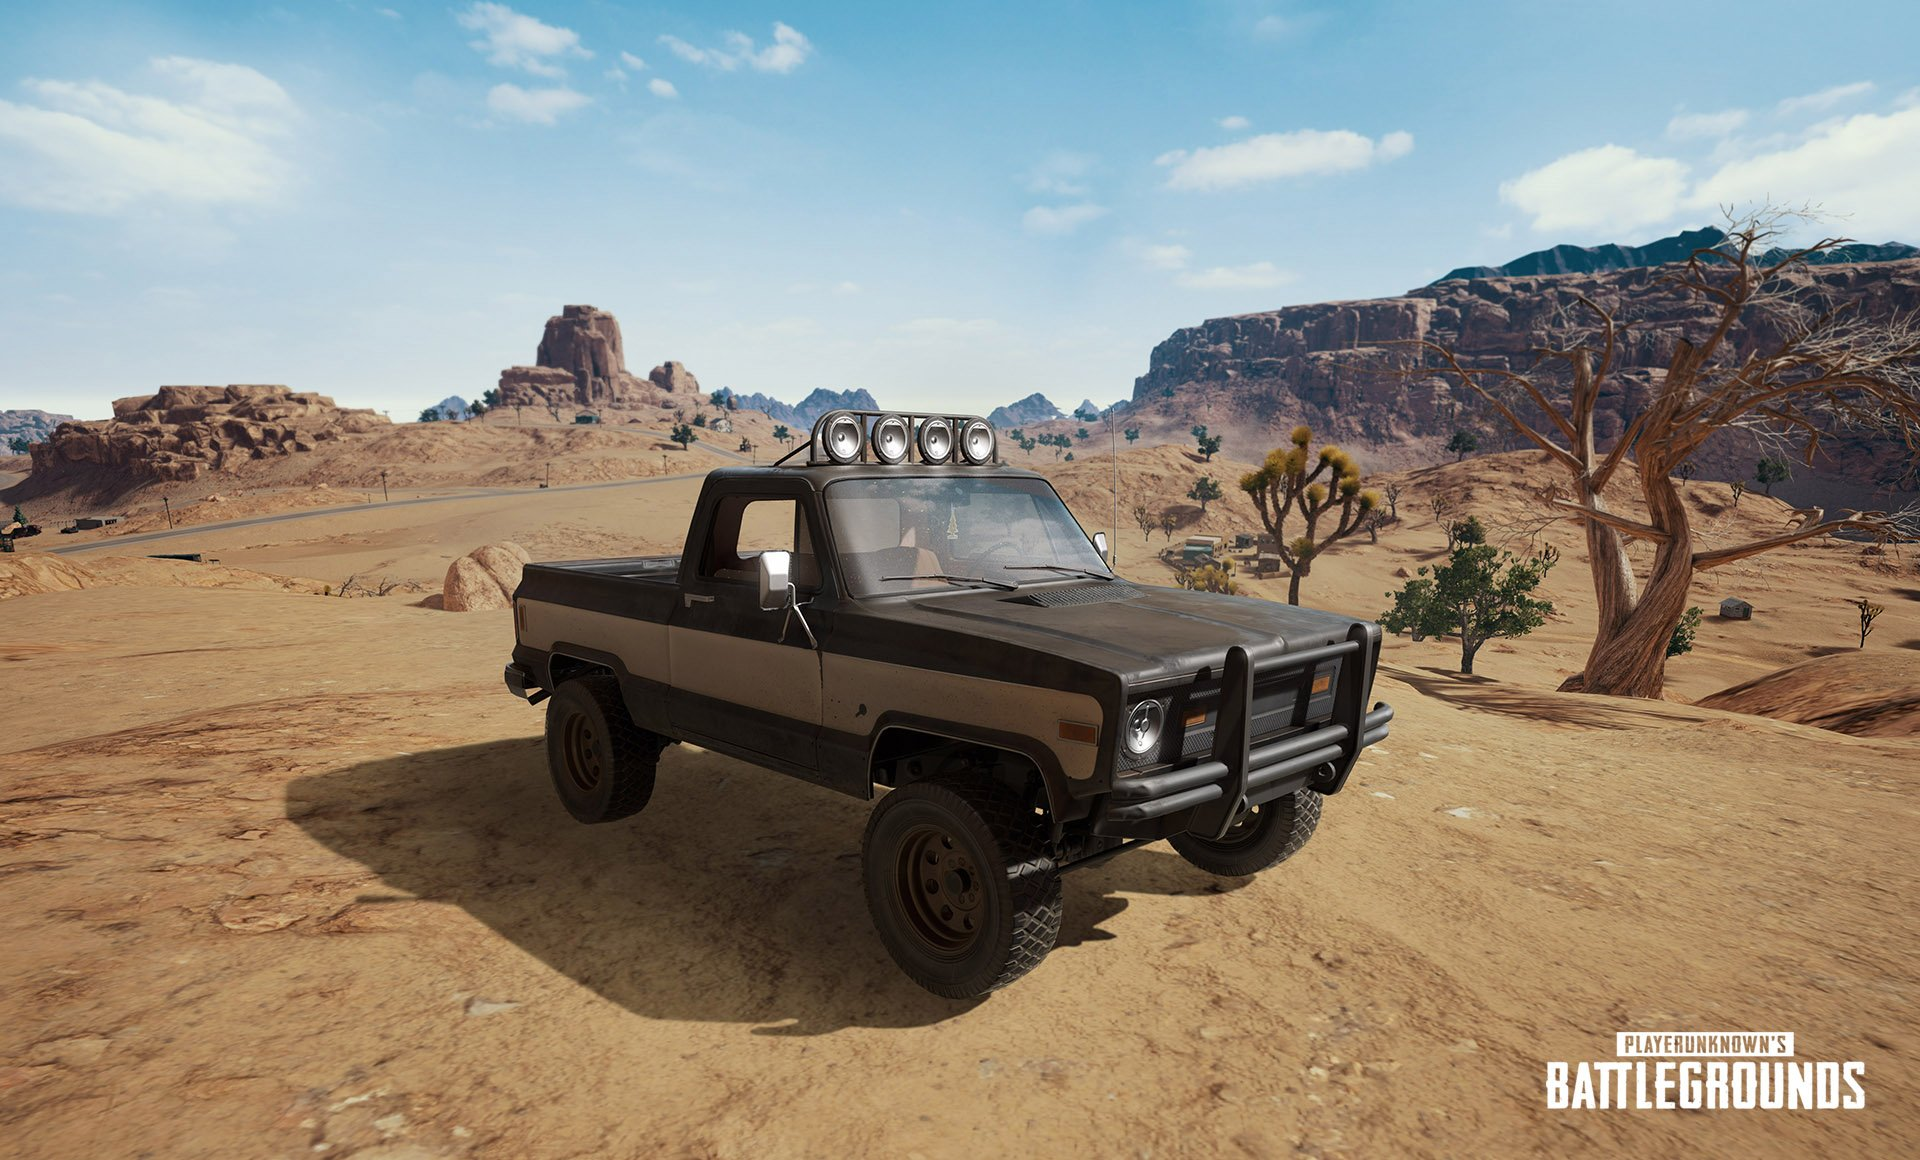 pubg_pickup_truck_desert_map_1